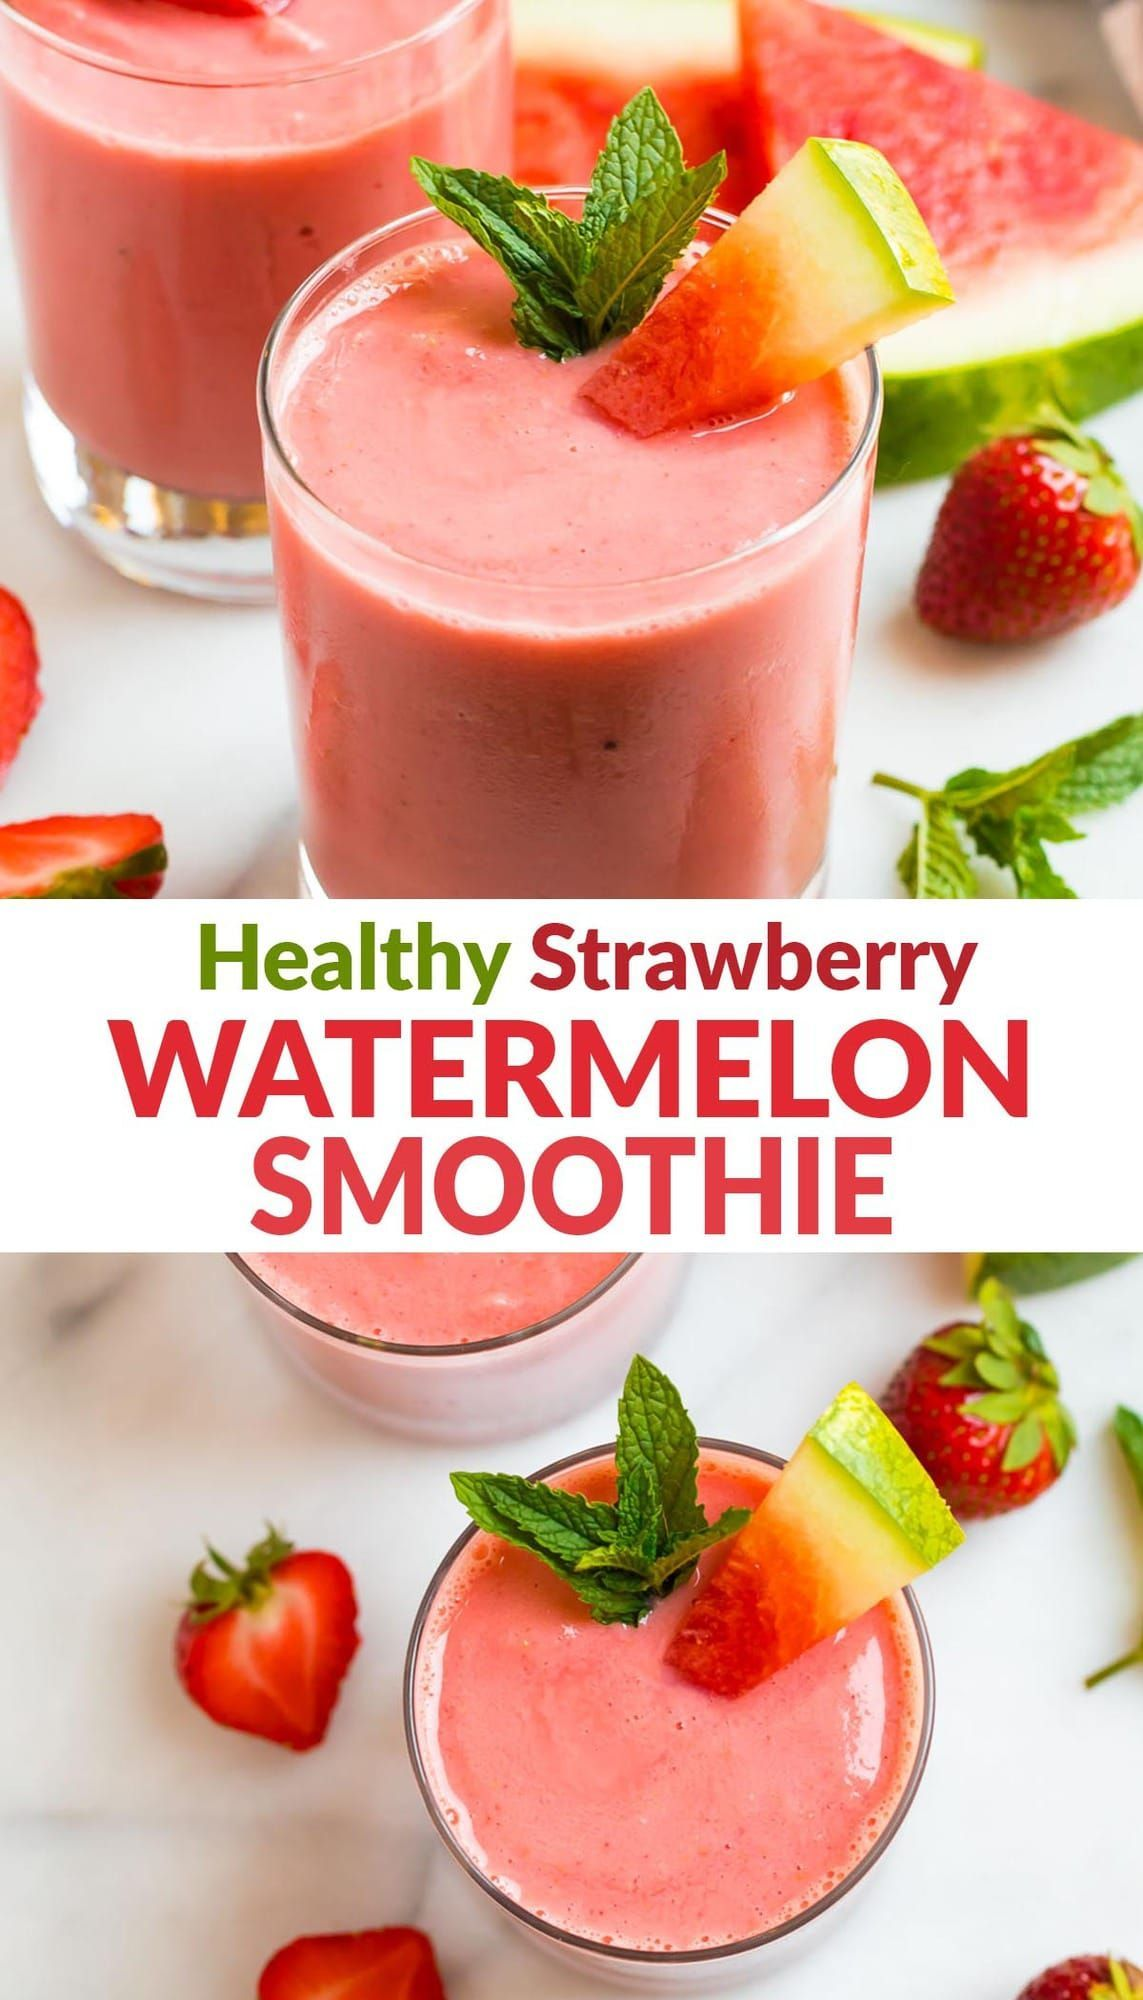 Watermelon Smoothie In 2020 Watermelon Smoothies Watermelon Smoothie Recipes Smoothie Recipes Healthy